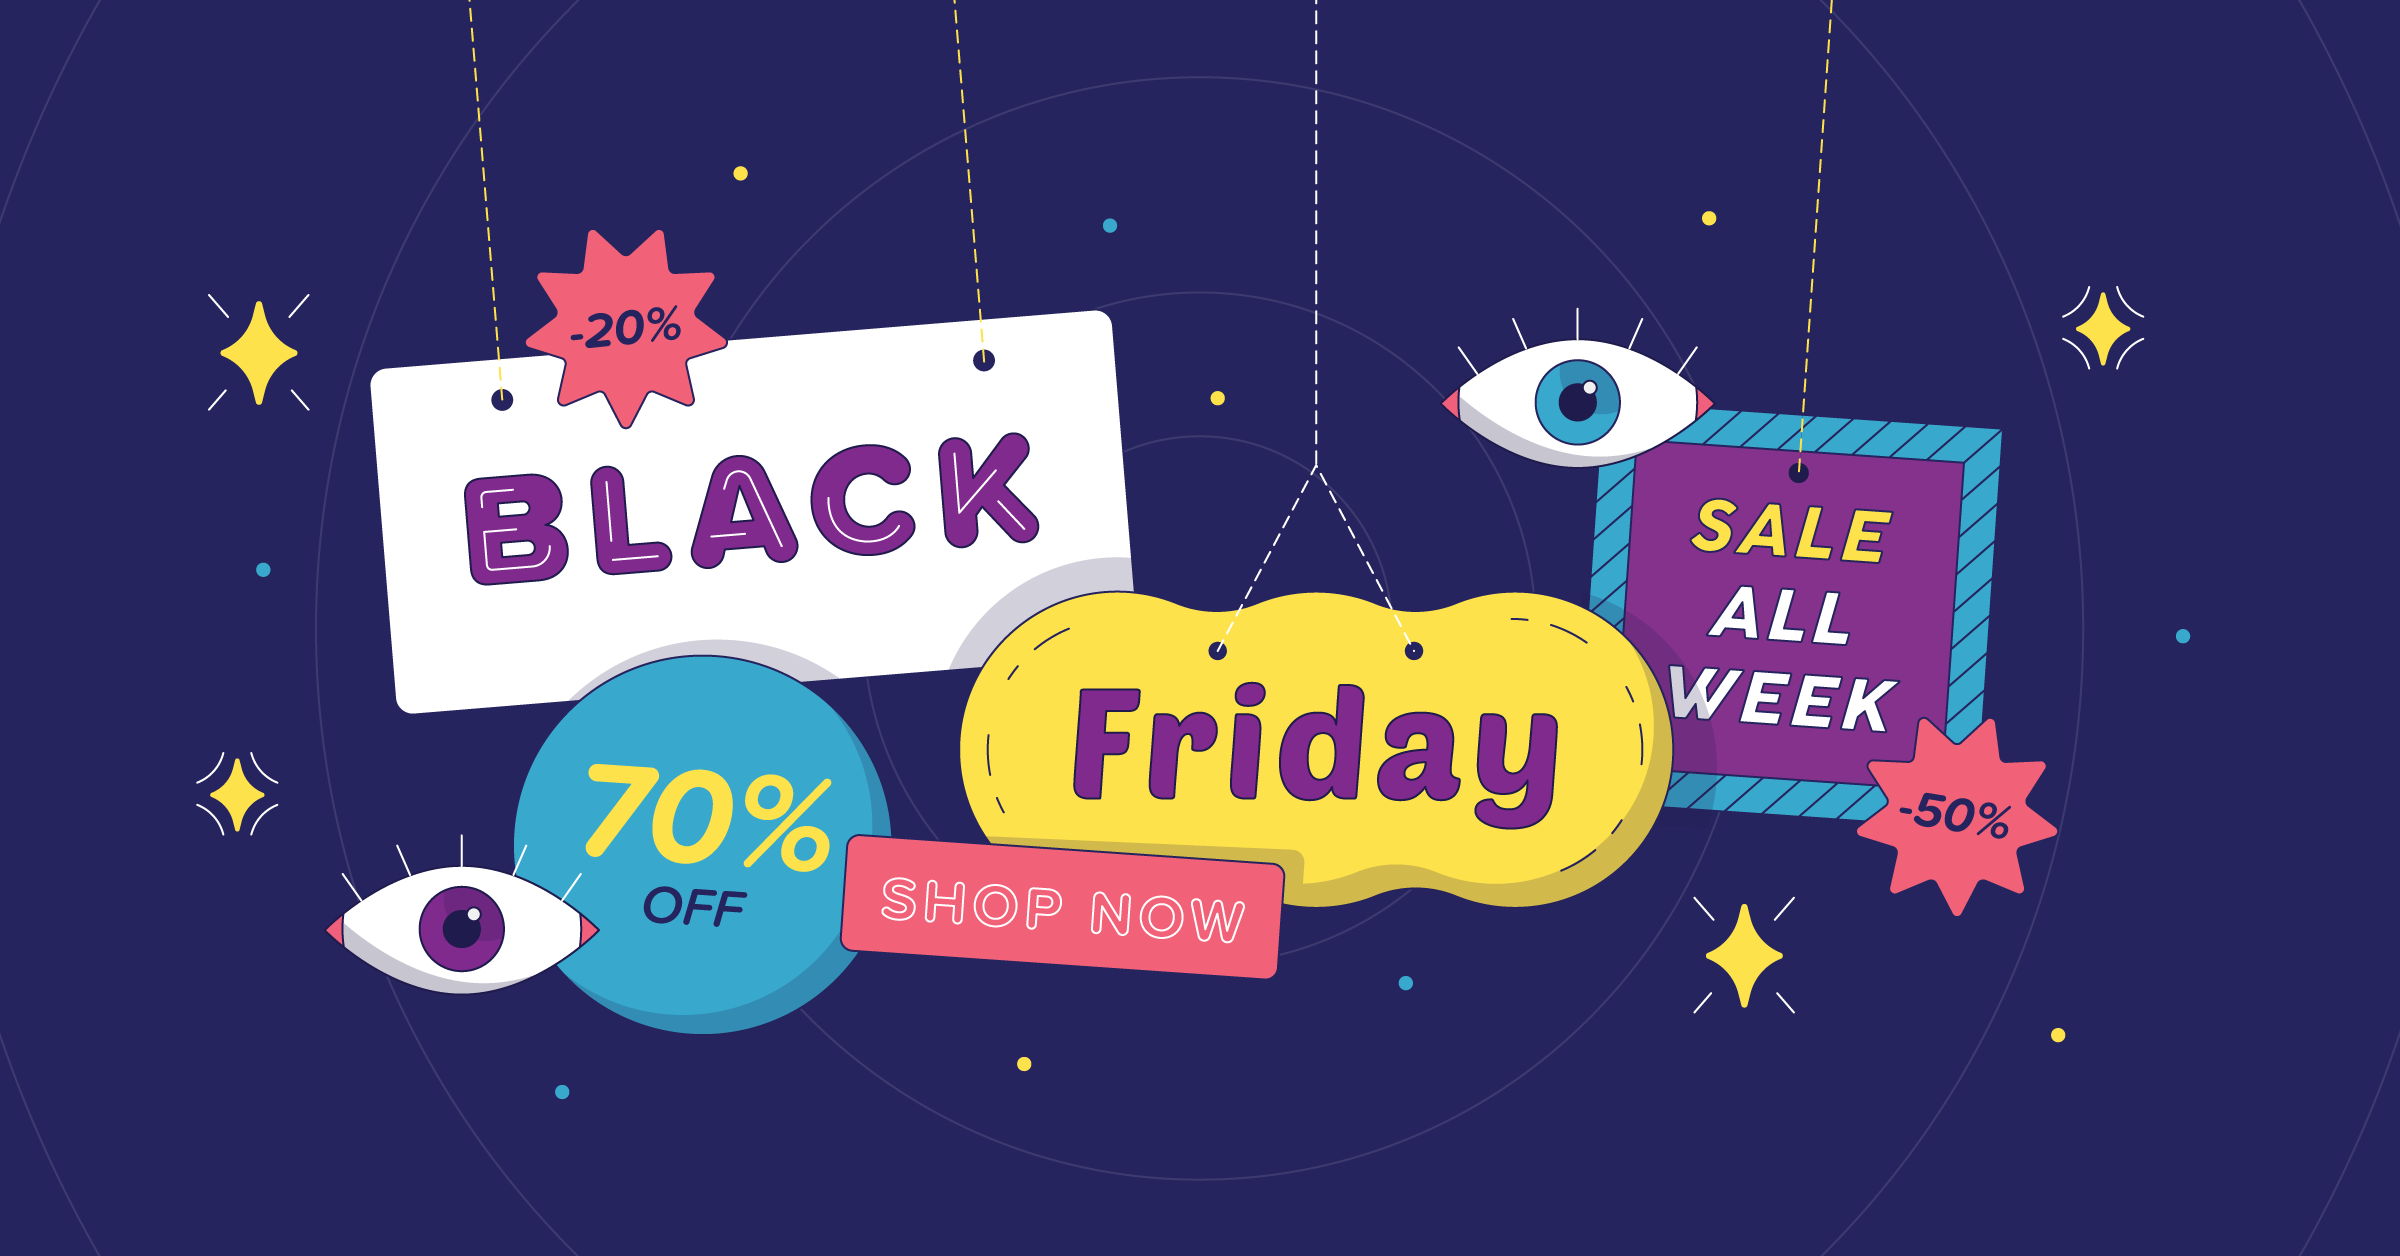 How to Prepare Your Campaigns for Black Friday